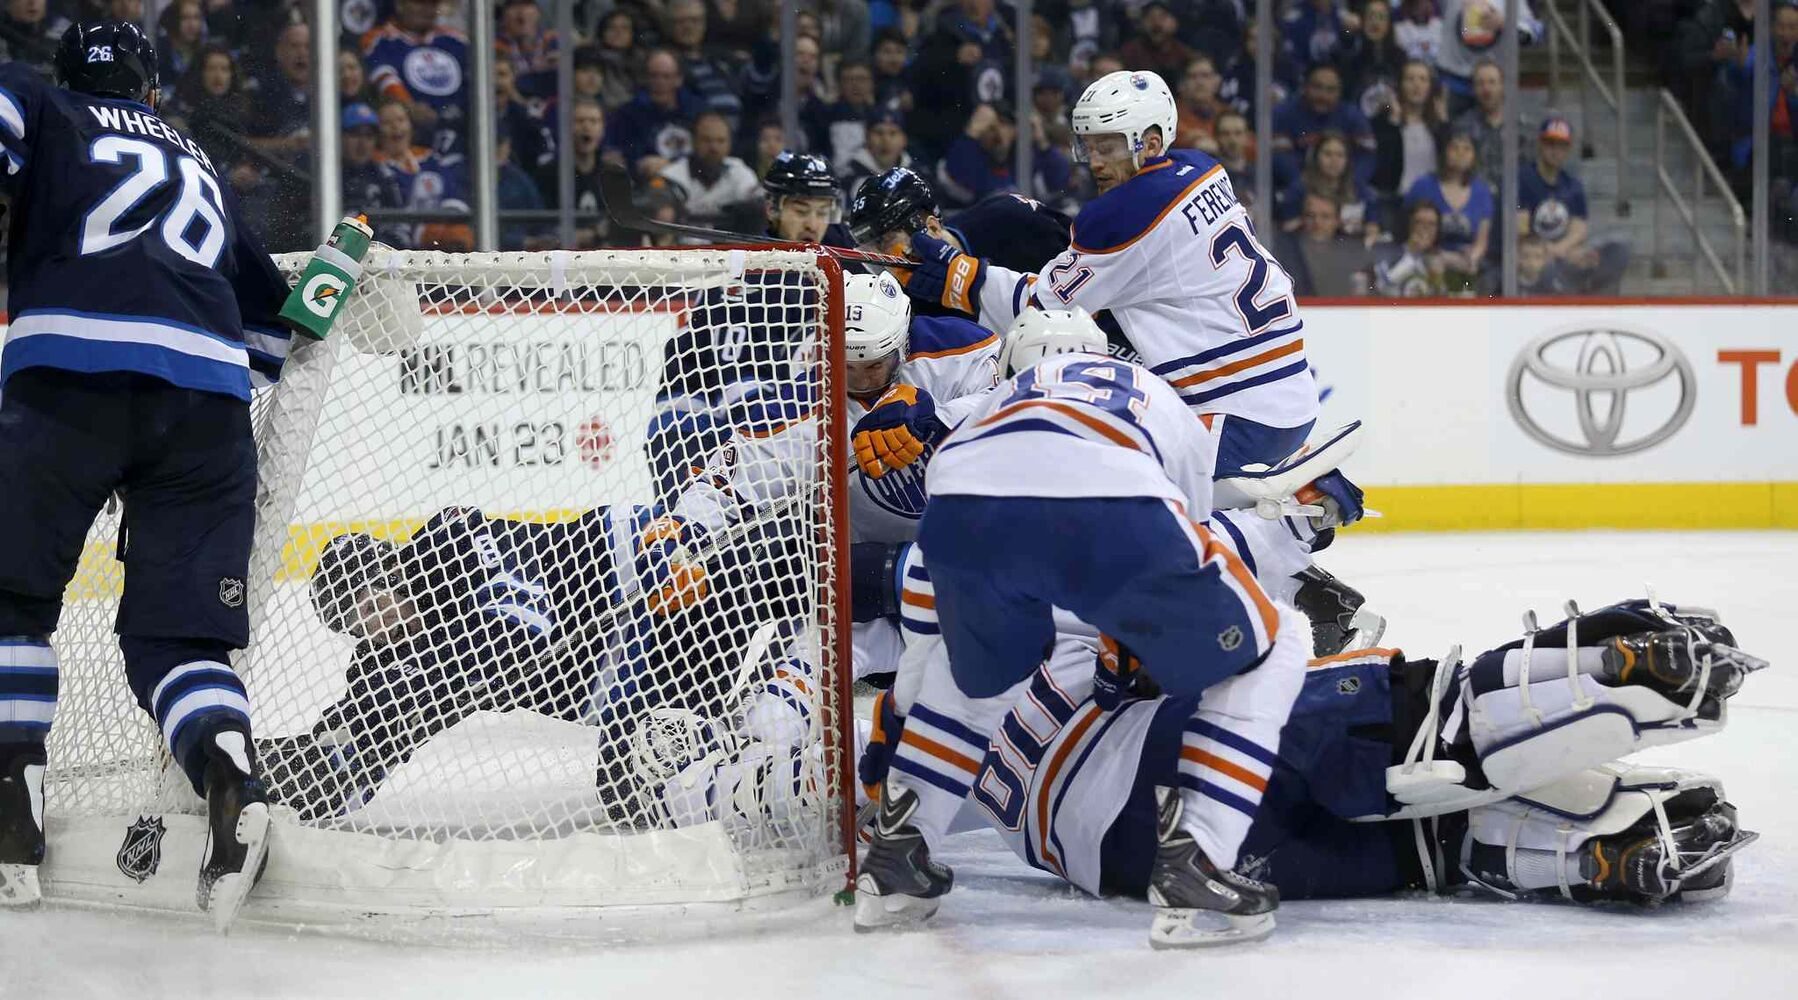 Winnipeg Jets' Jacob Trouba (8) ends up in the net past Edmonton Oilers' goaltender Ilya Bryzgalov (80) during the second period of Saturday's NHL game in Winnipeg. (Trevor Hagan / Winnipeg Free Press)